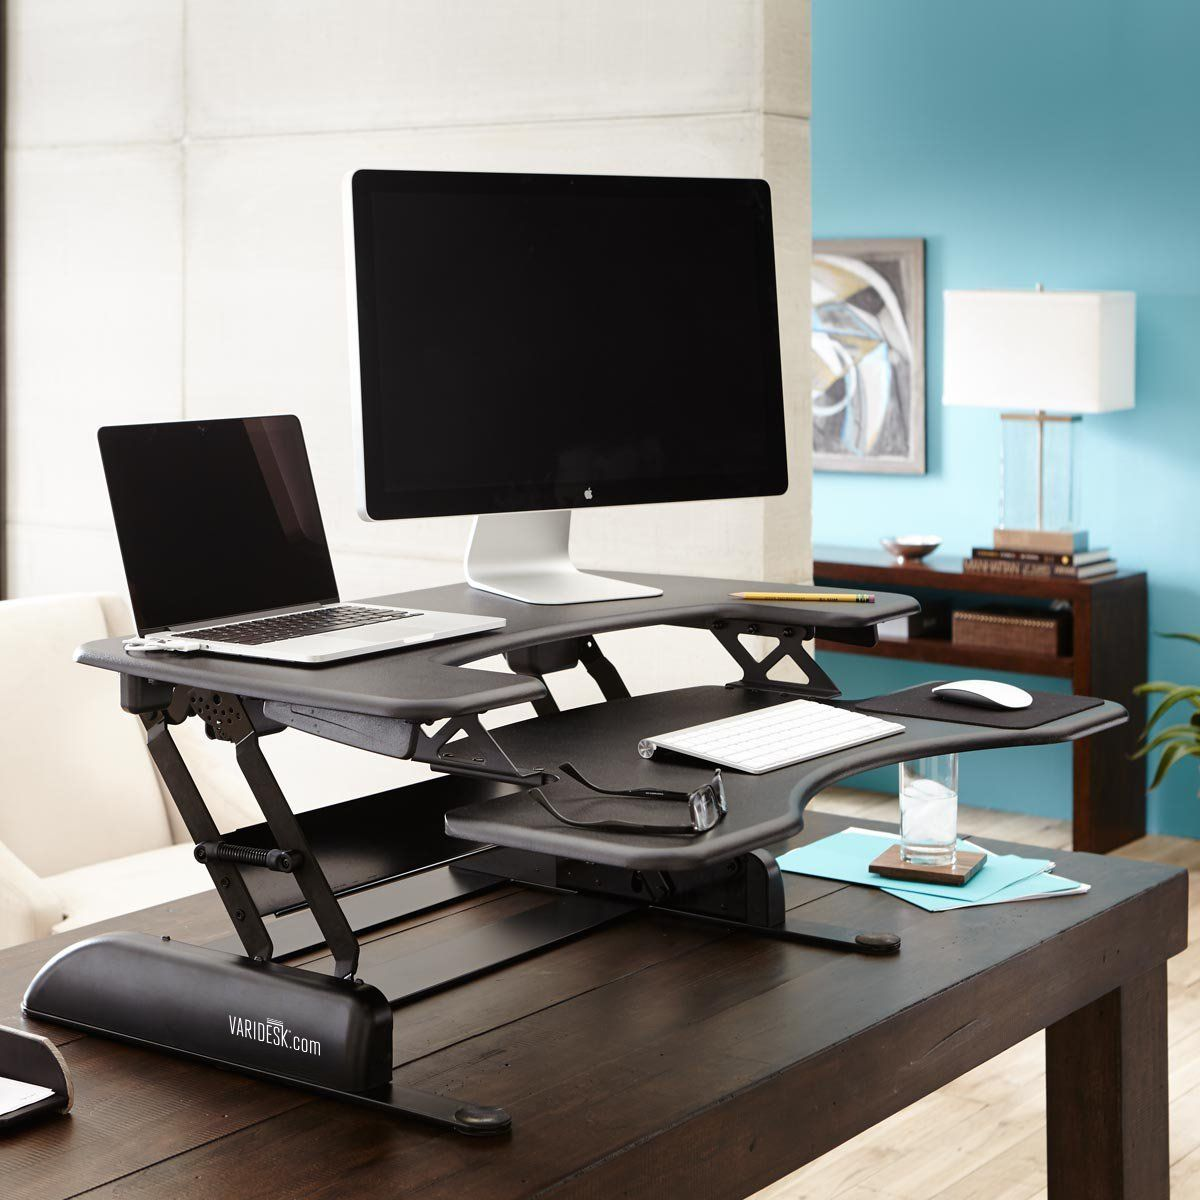 Amazon.com : VARIDESK-Height-Adjustable Standing Desk - Pro Plus 36 - Black : Computers & Accessories